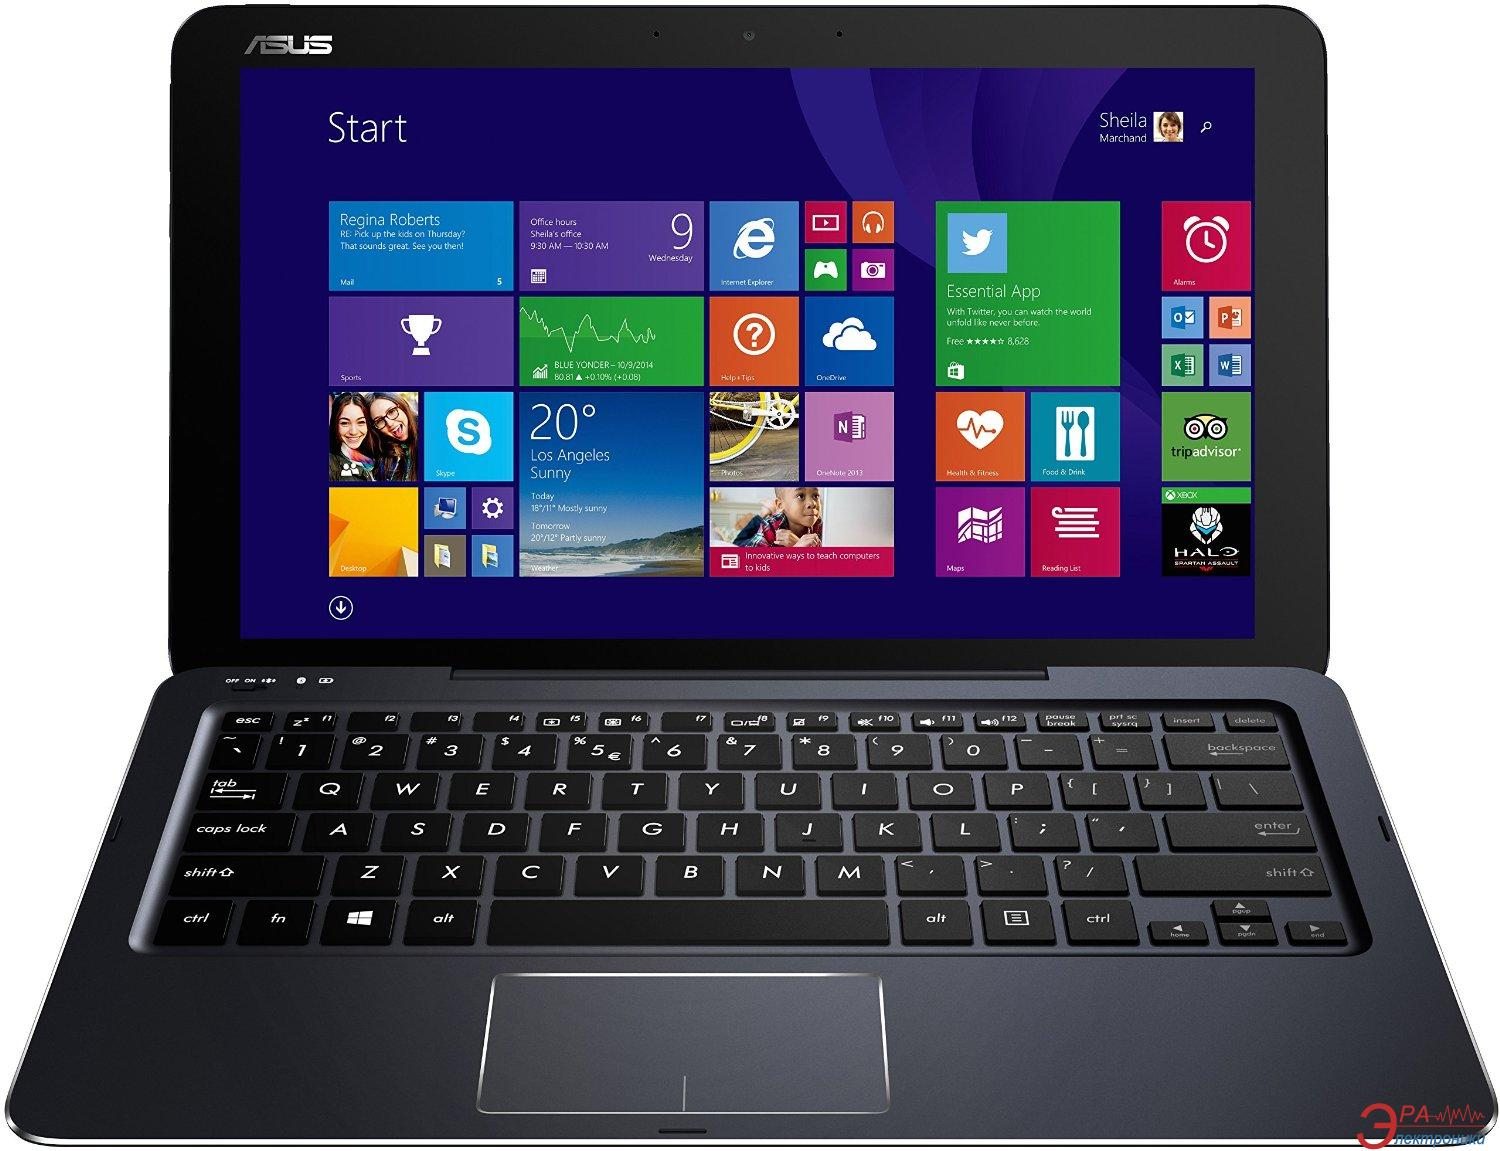 Нетбук Asus Transformer Book T300CHI (T300CHI-FH011H) Black 12.5